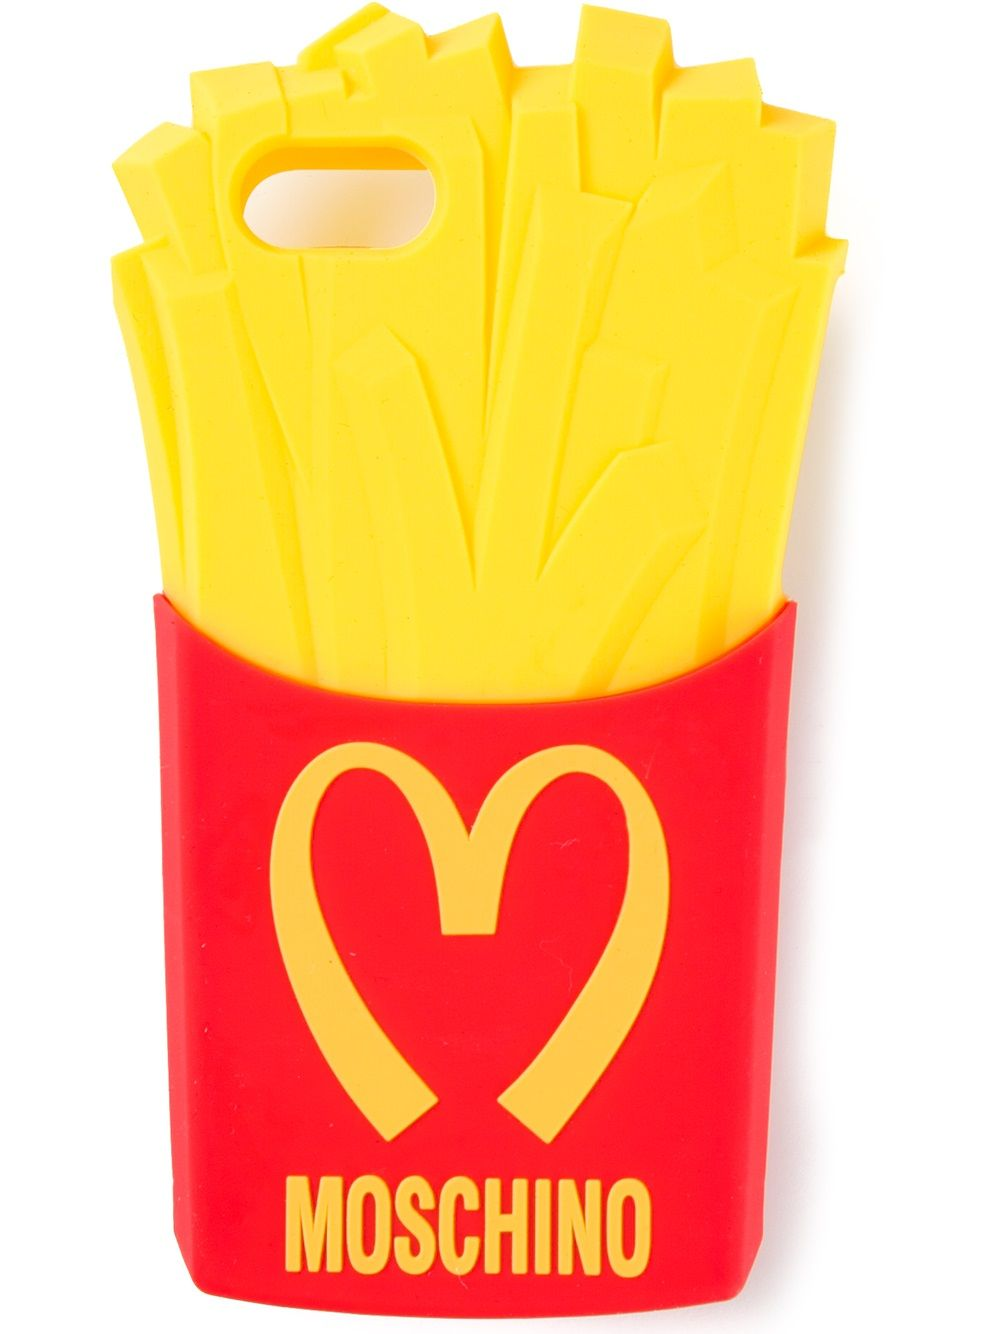 Moschino Fries iPhone 5 Cover - Farfetch | Iphone case covers, Red ...